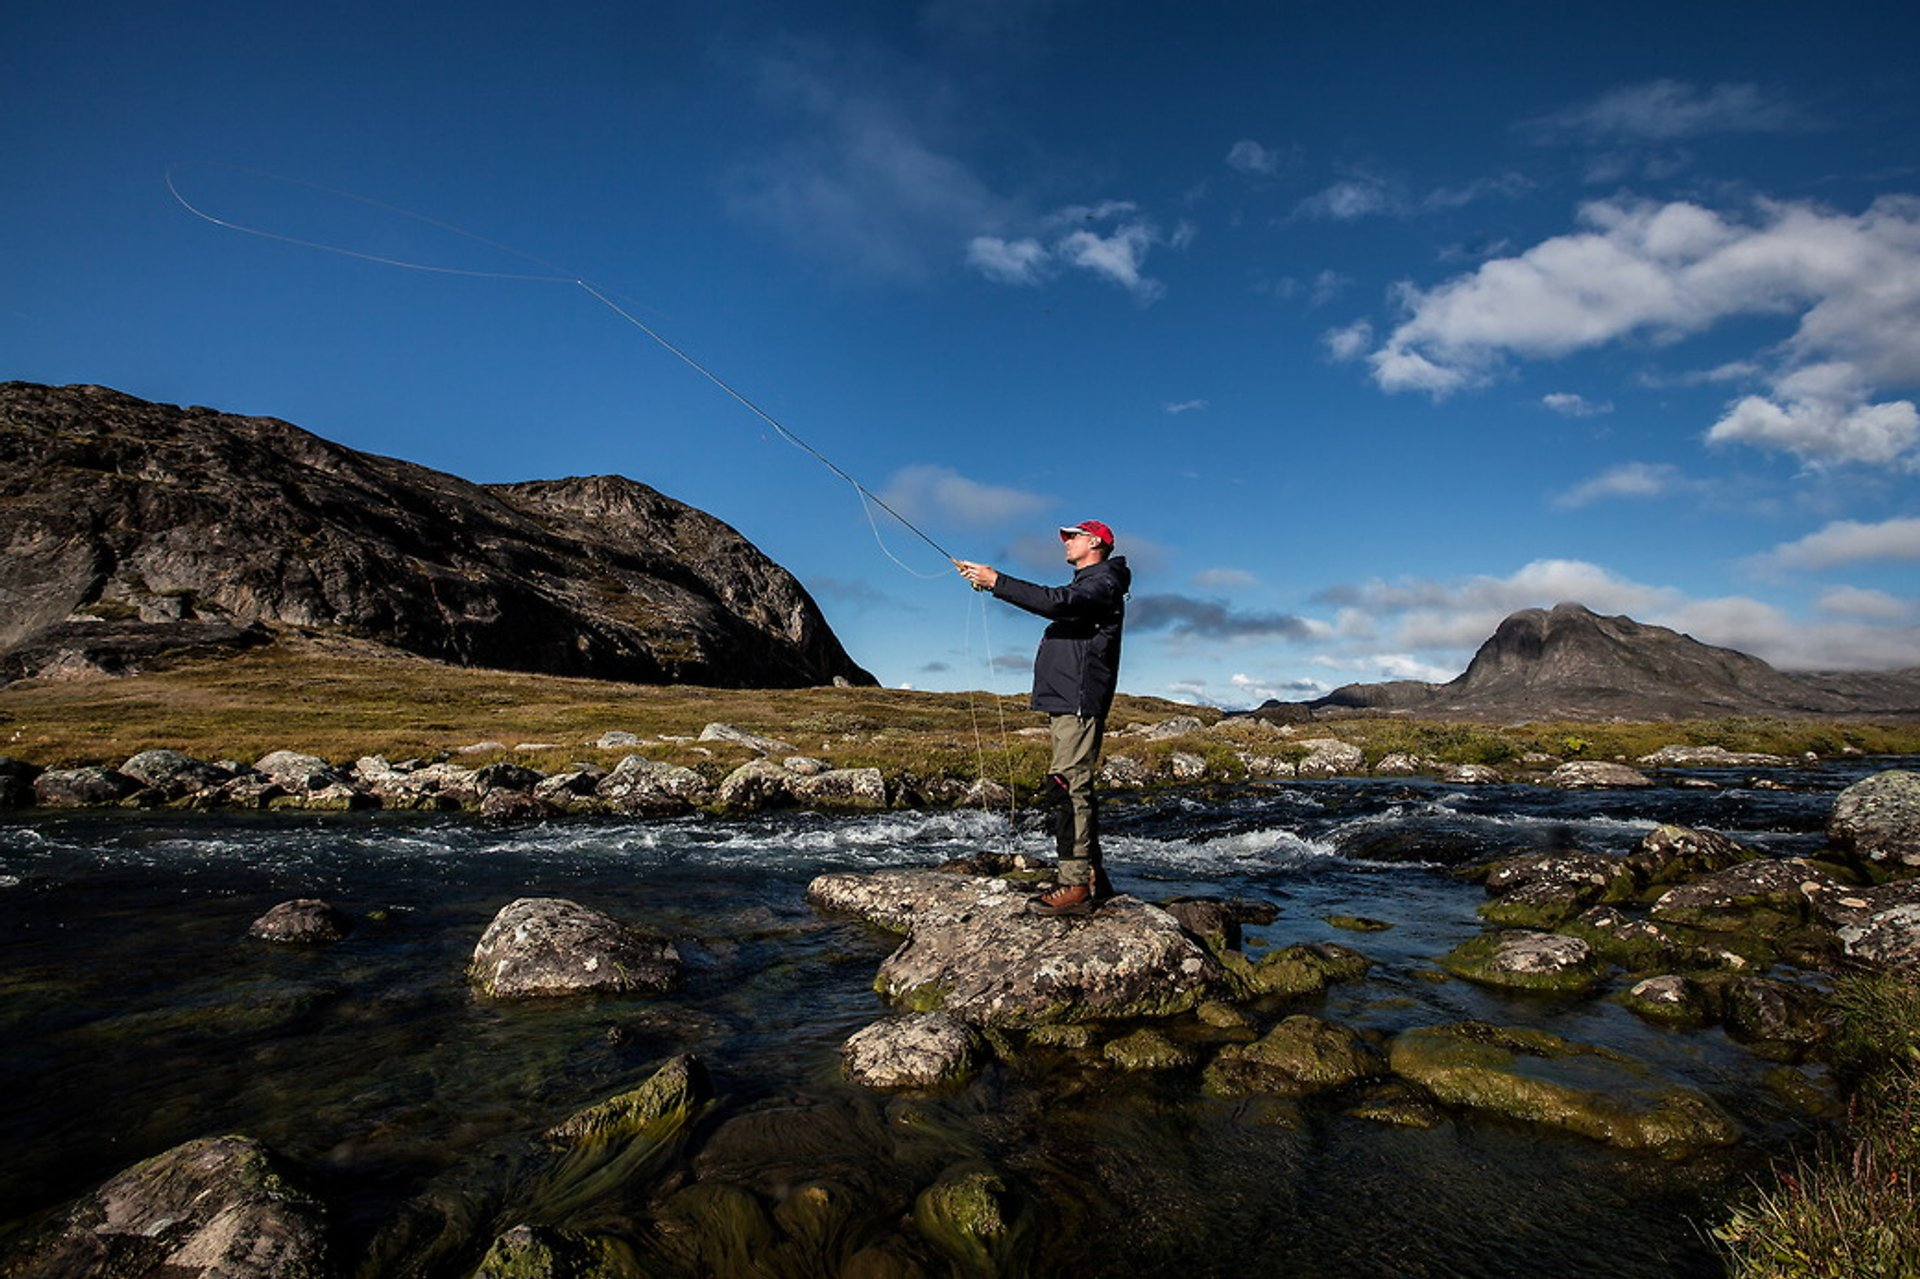 Fly fishing on the lower Erfalik river 2019